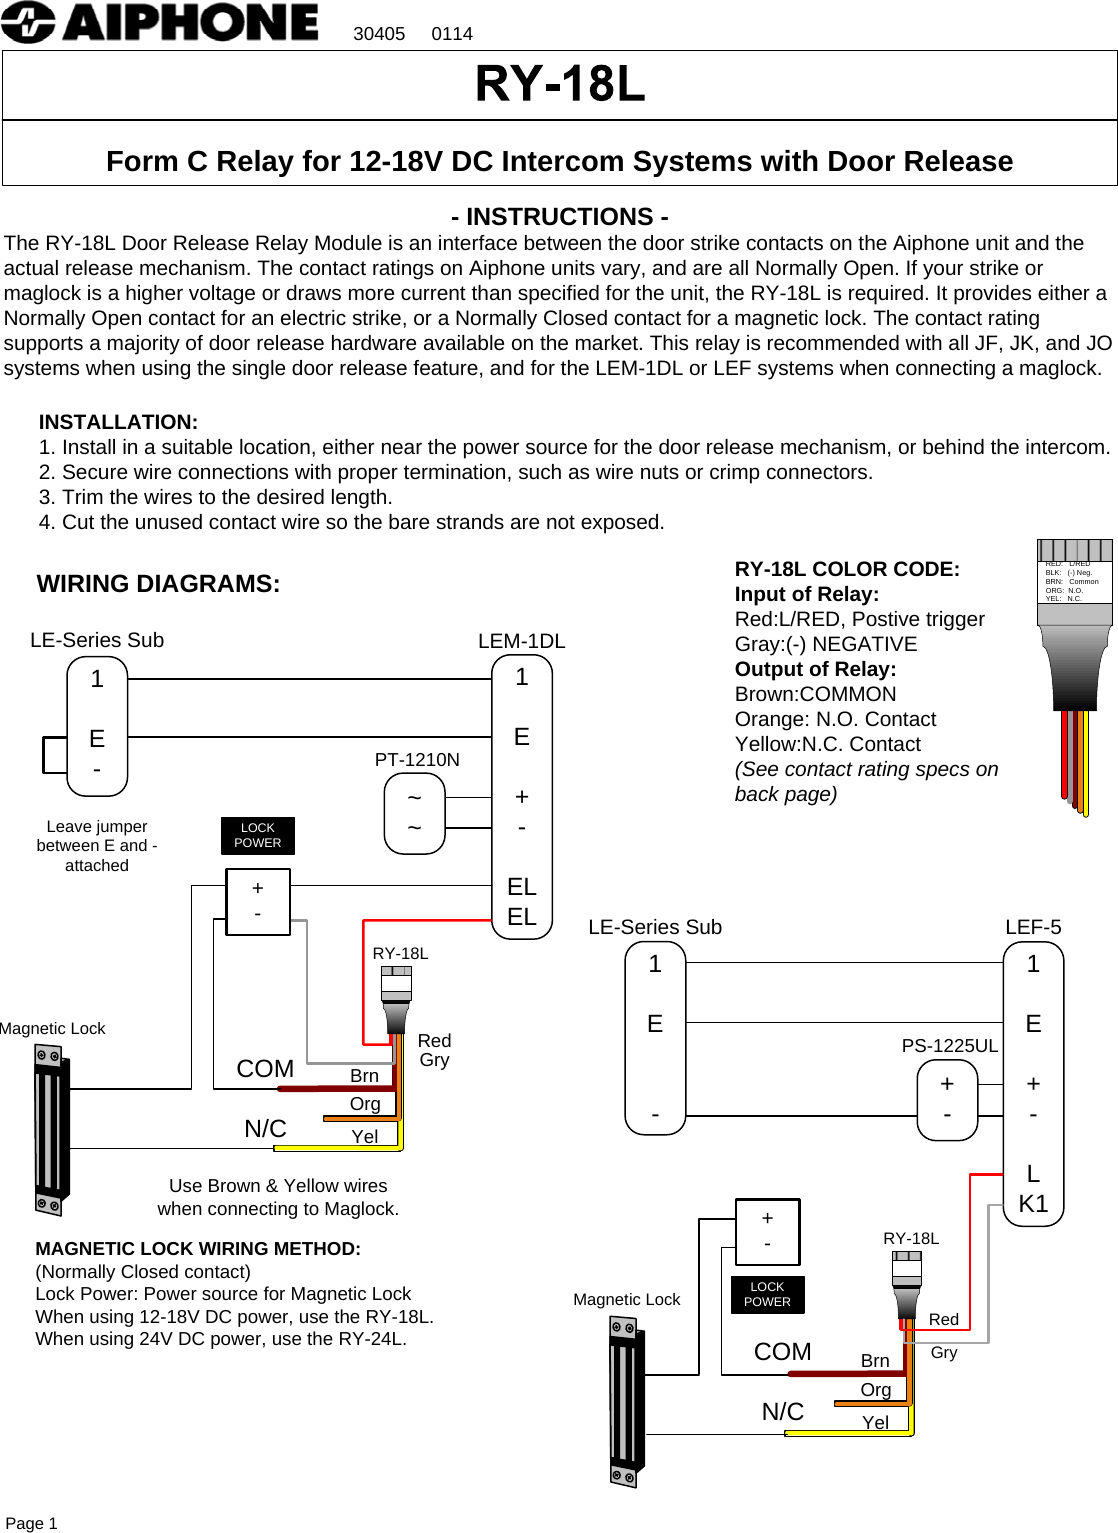 Aiphone Visio Ry 18l Instr 0114 Instructions